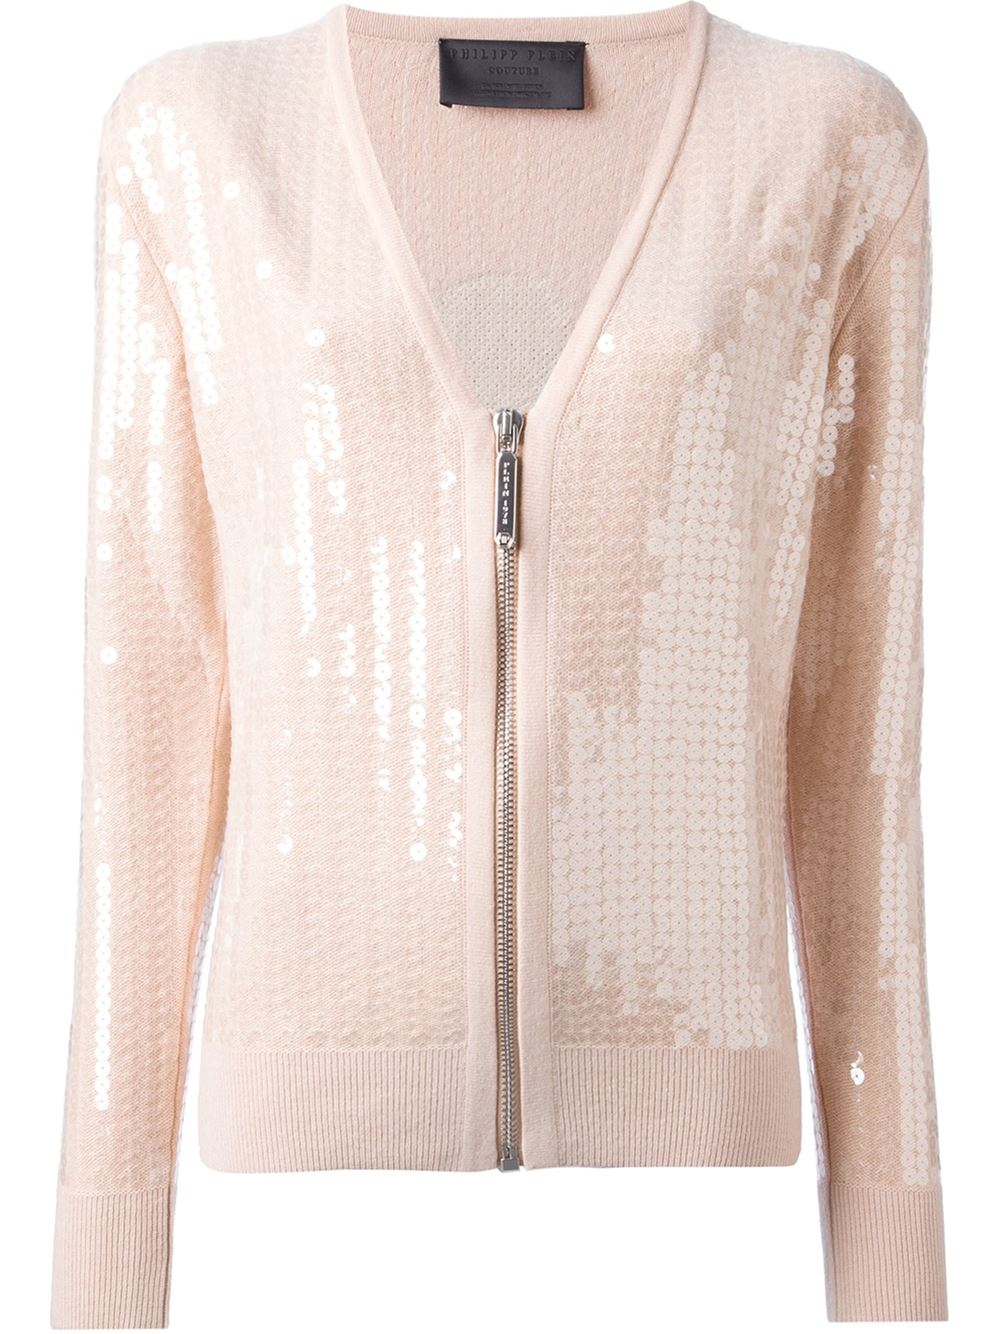 Philipp plein 'Mickey Mouse' Sequin Cardigan in Pink | Lyst